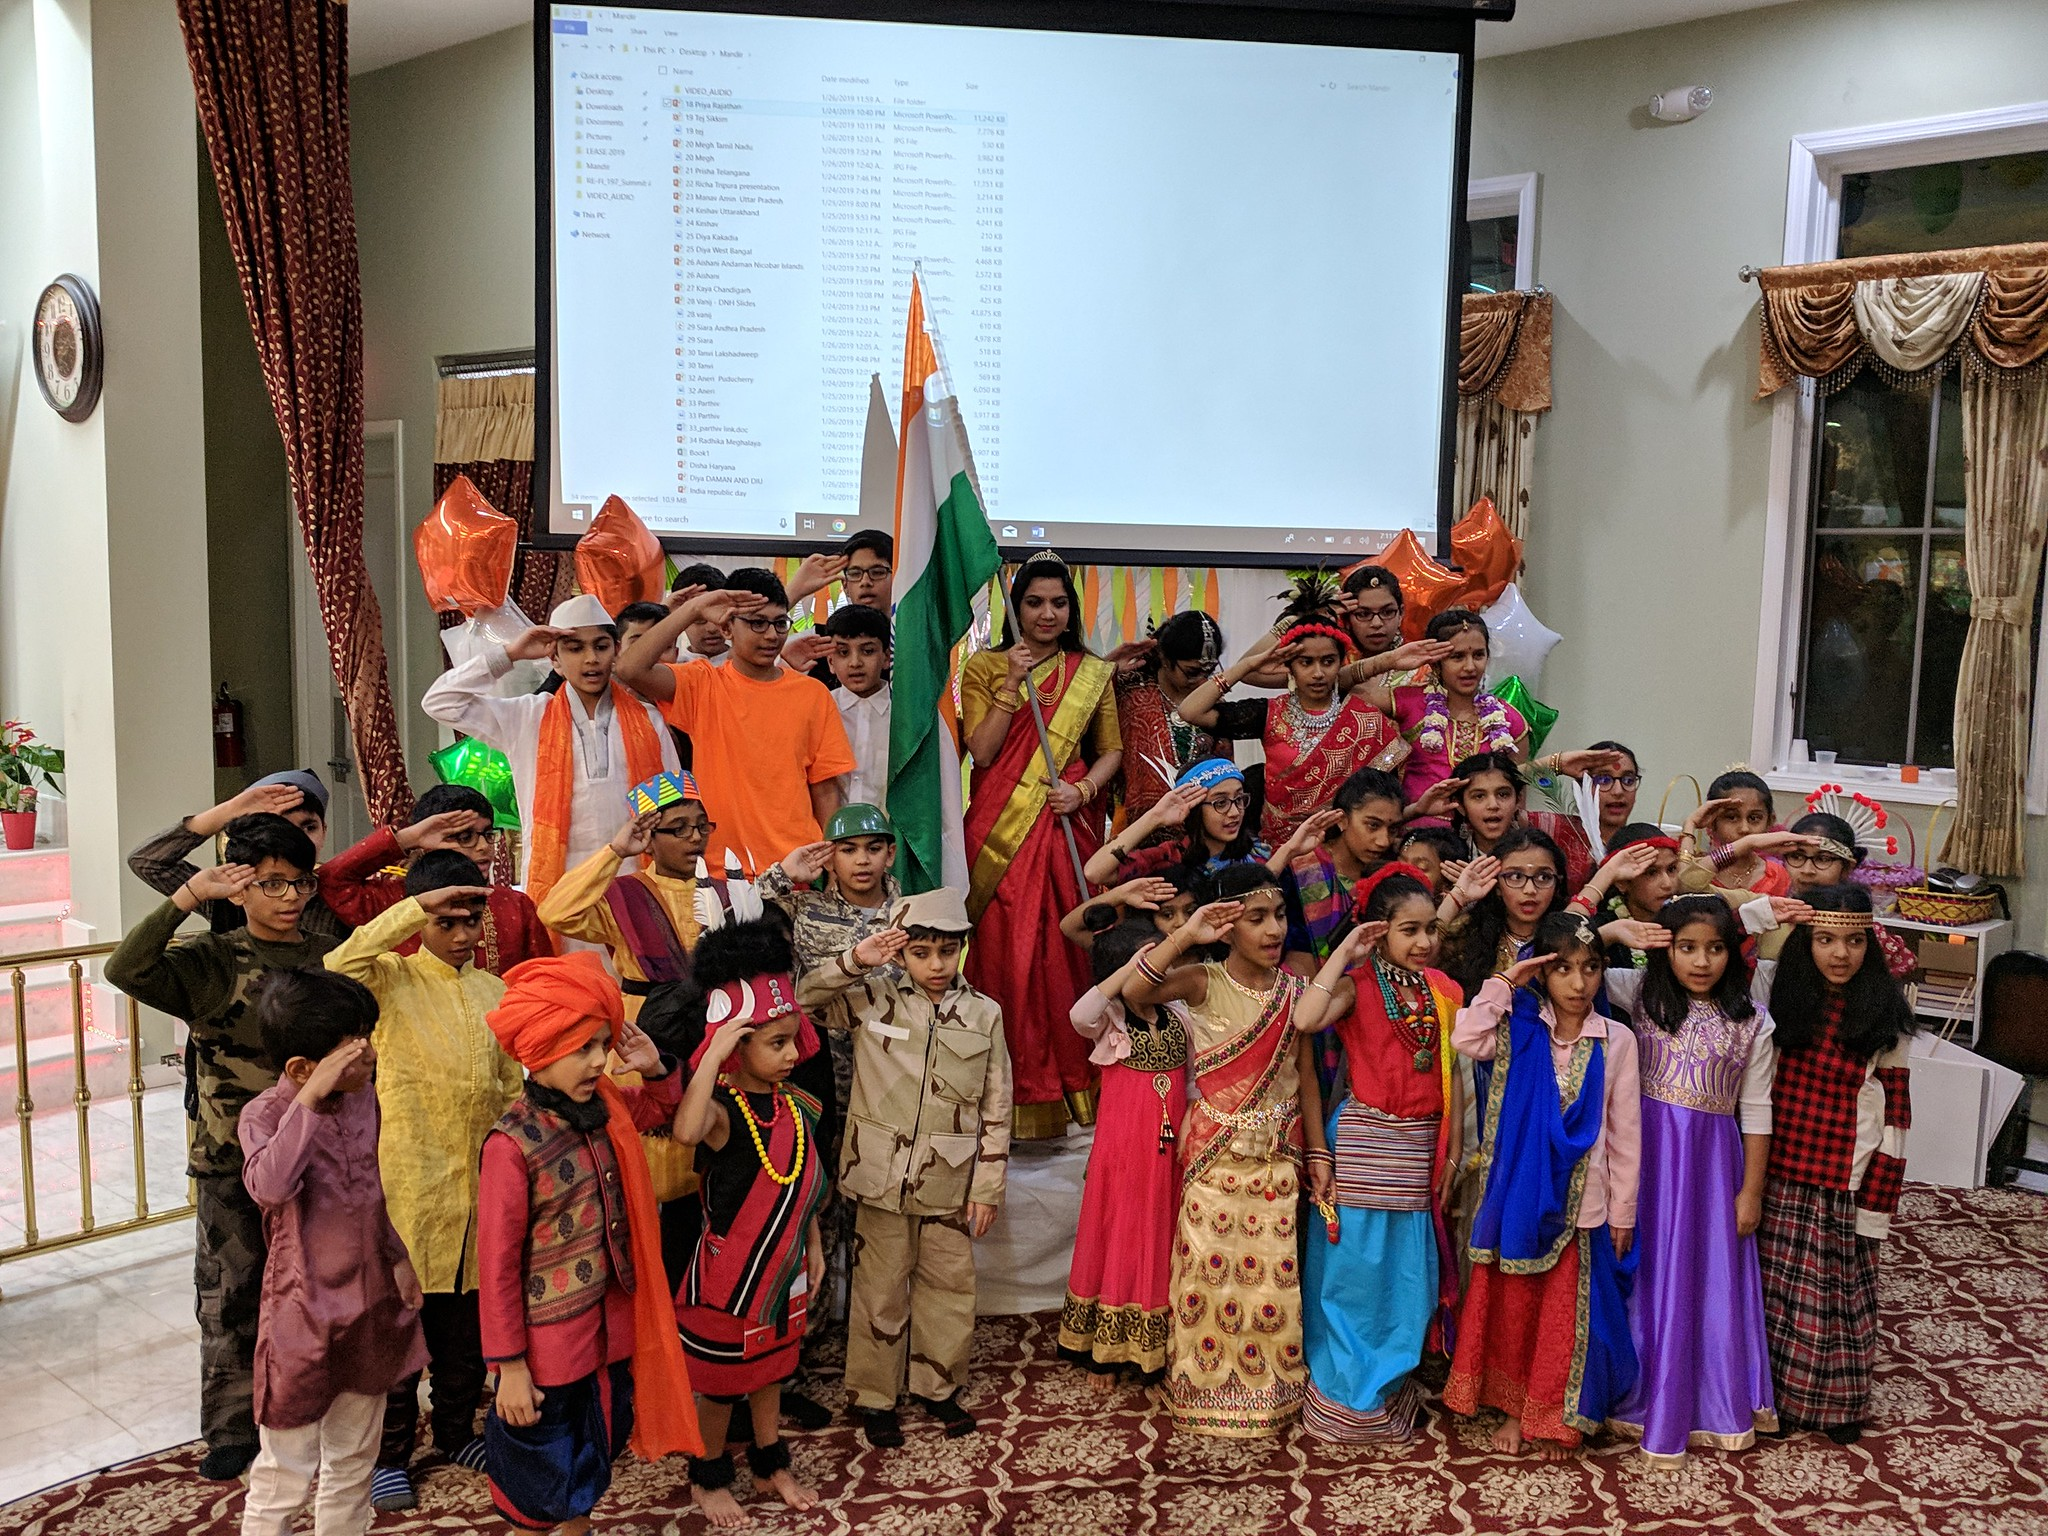 India Republic Day Celebrations - Parsippany, NJ